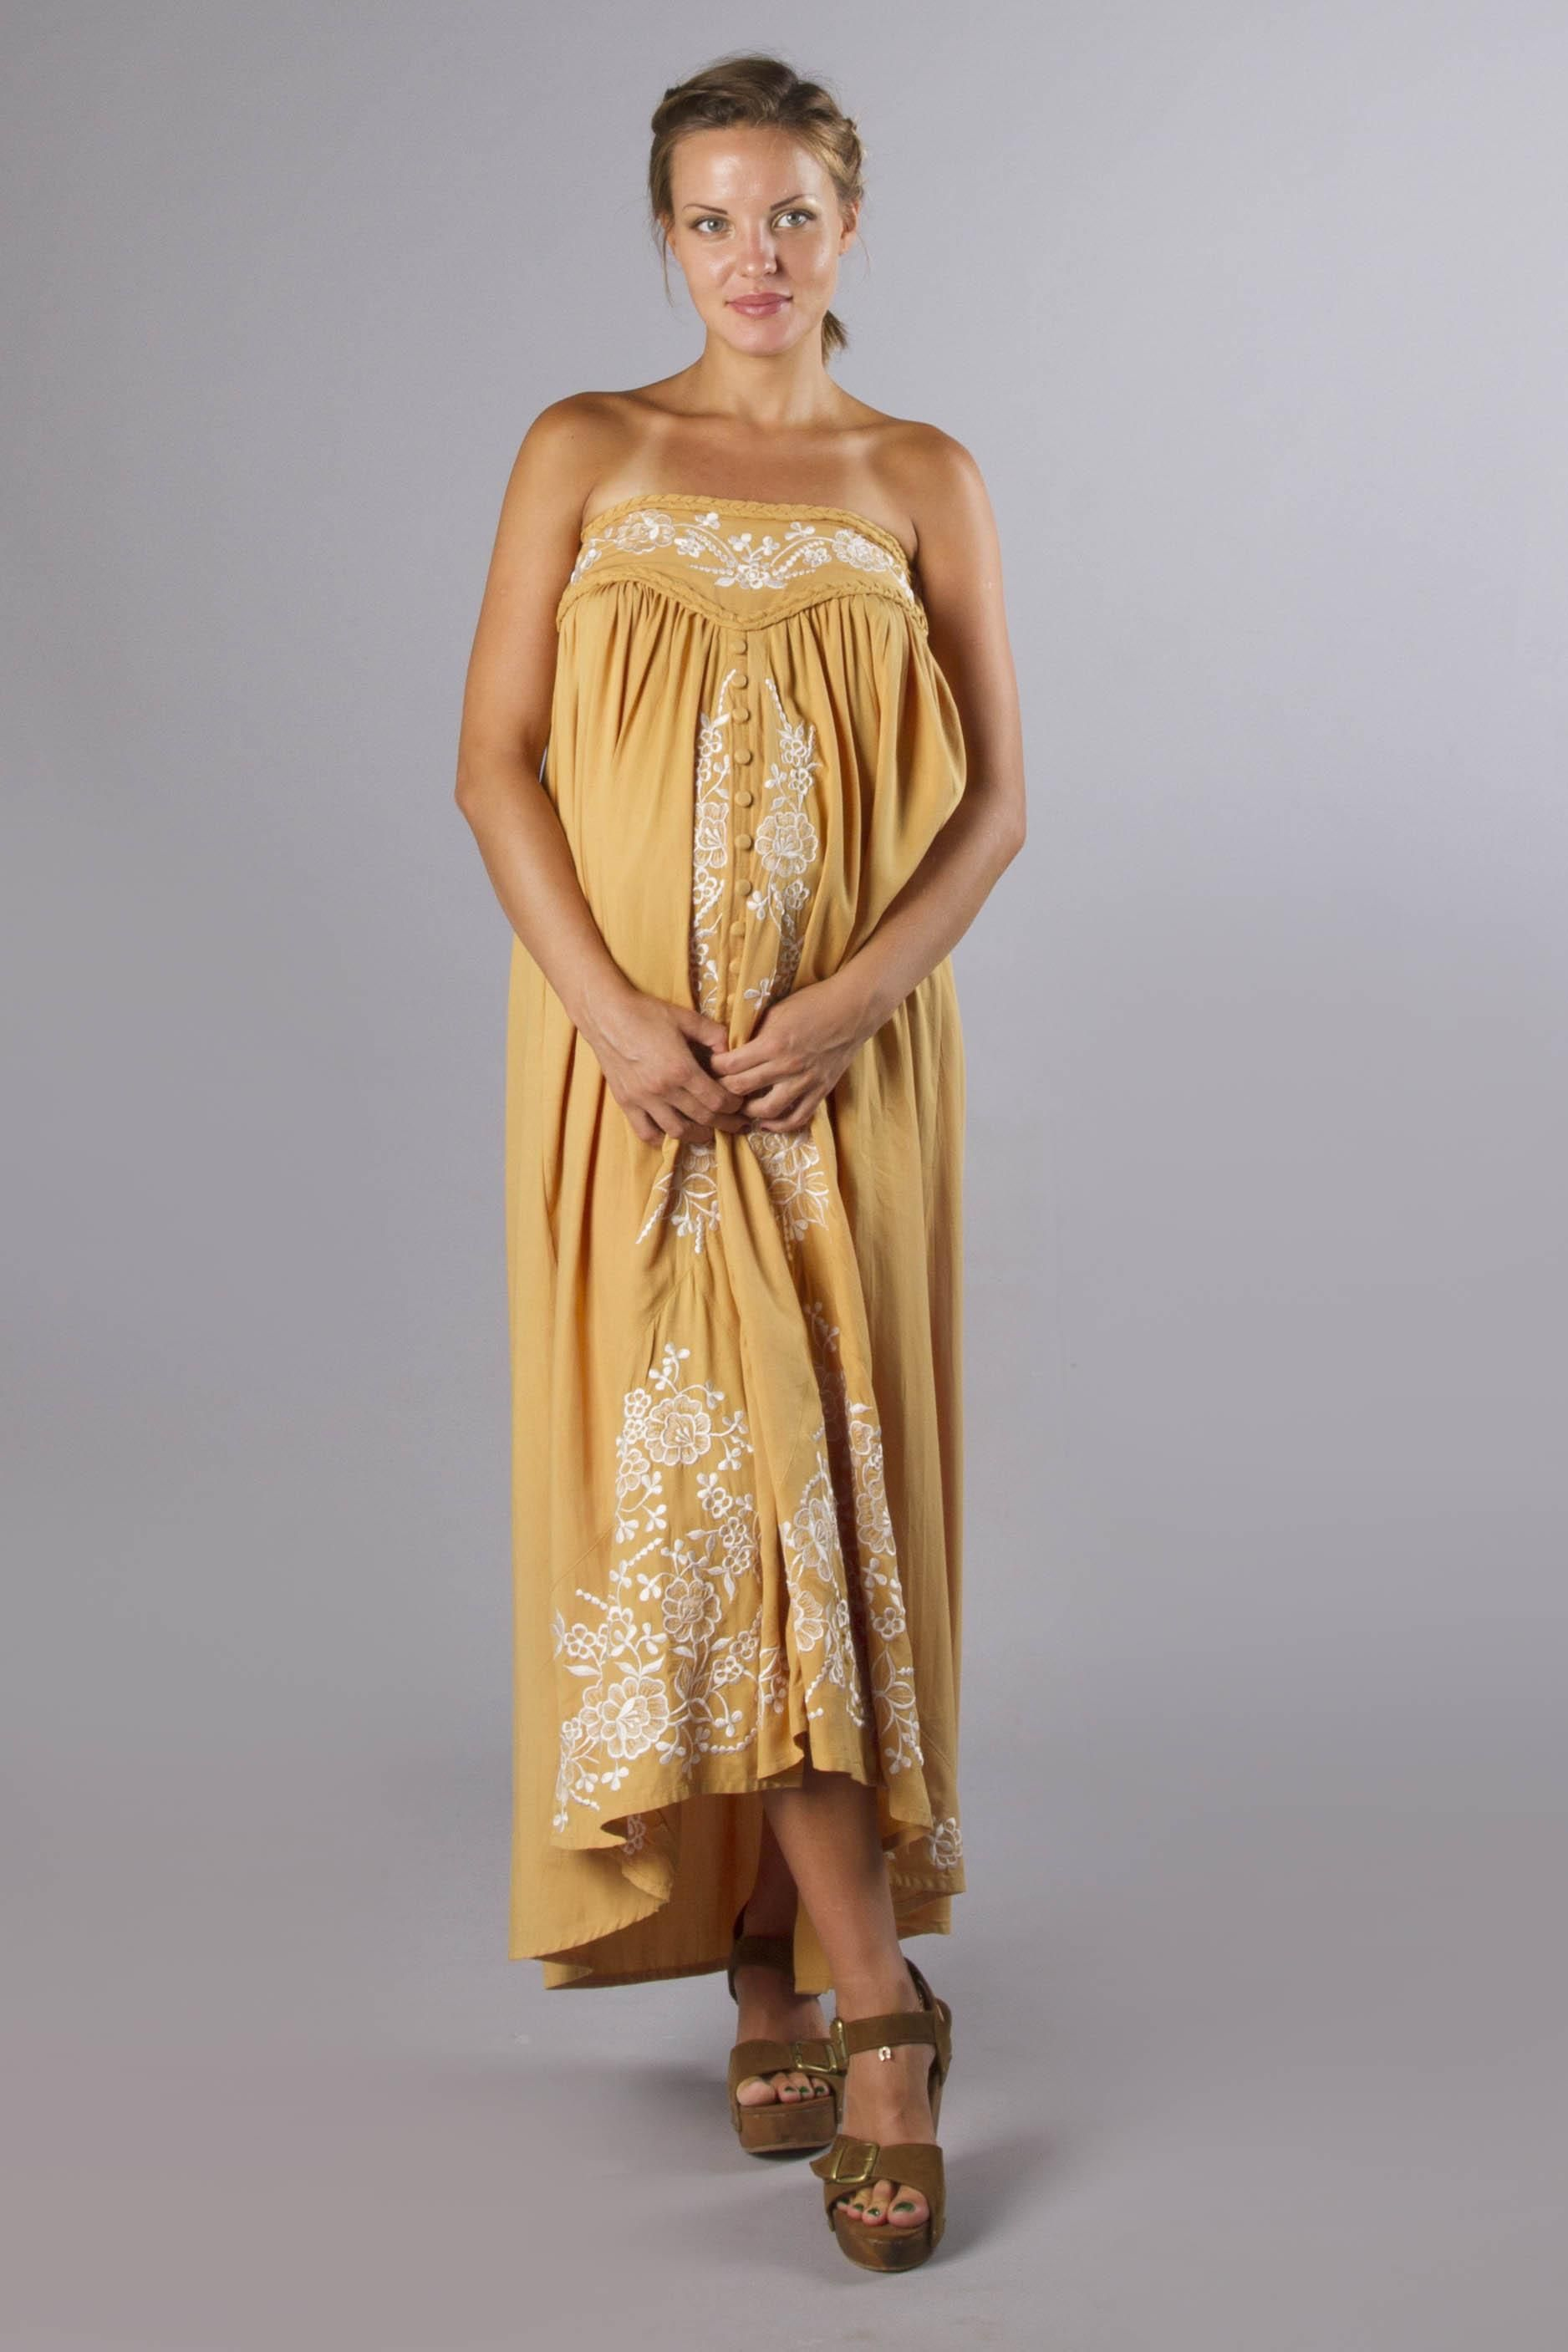 Abbey road maternity maxi skirt strapless dress gold with abbey road maternity maxi skirt strapless dress gold with floral embroidery fillyboo ombrellifo Image collections